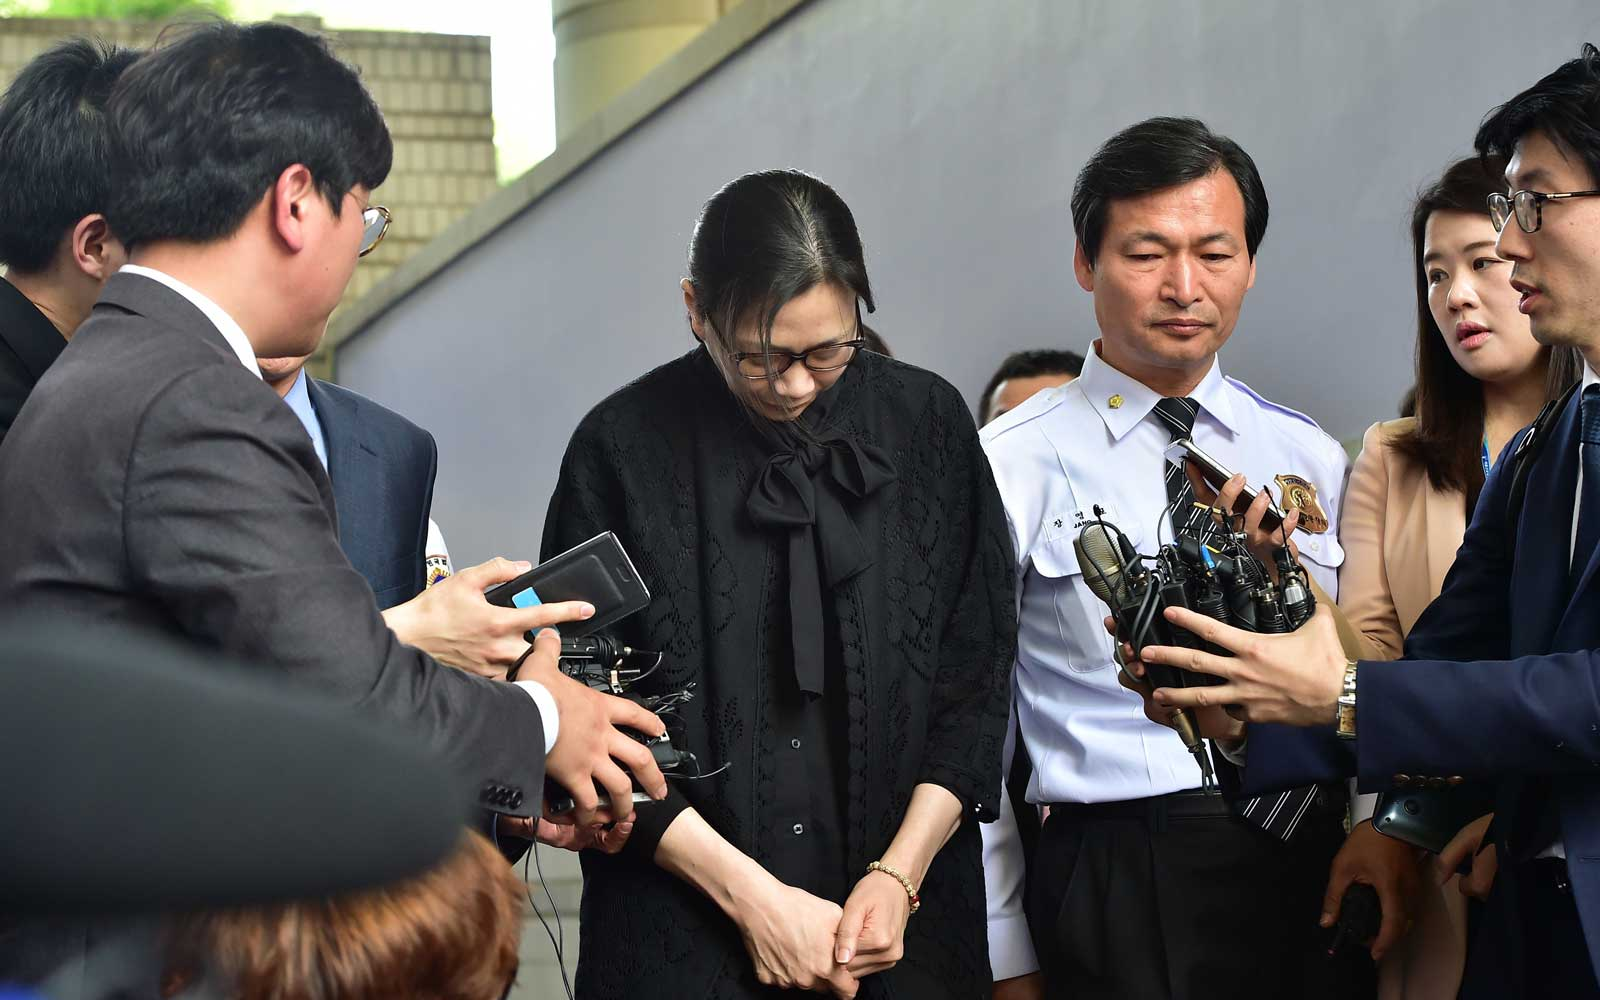 Former Korean Air executive Cho Hyun-ah nut rage trial